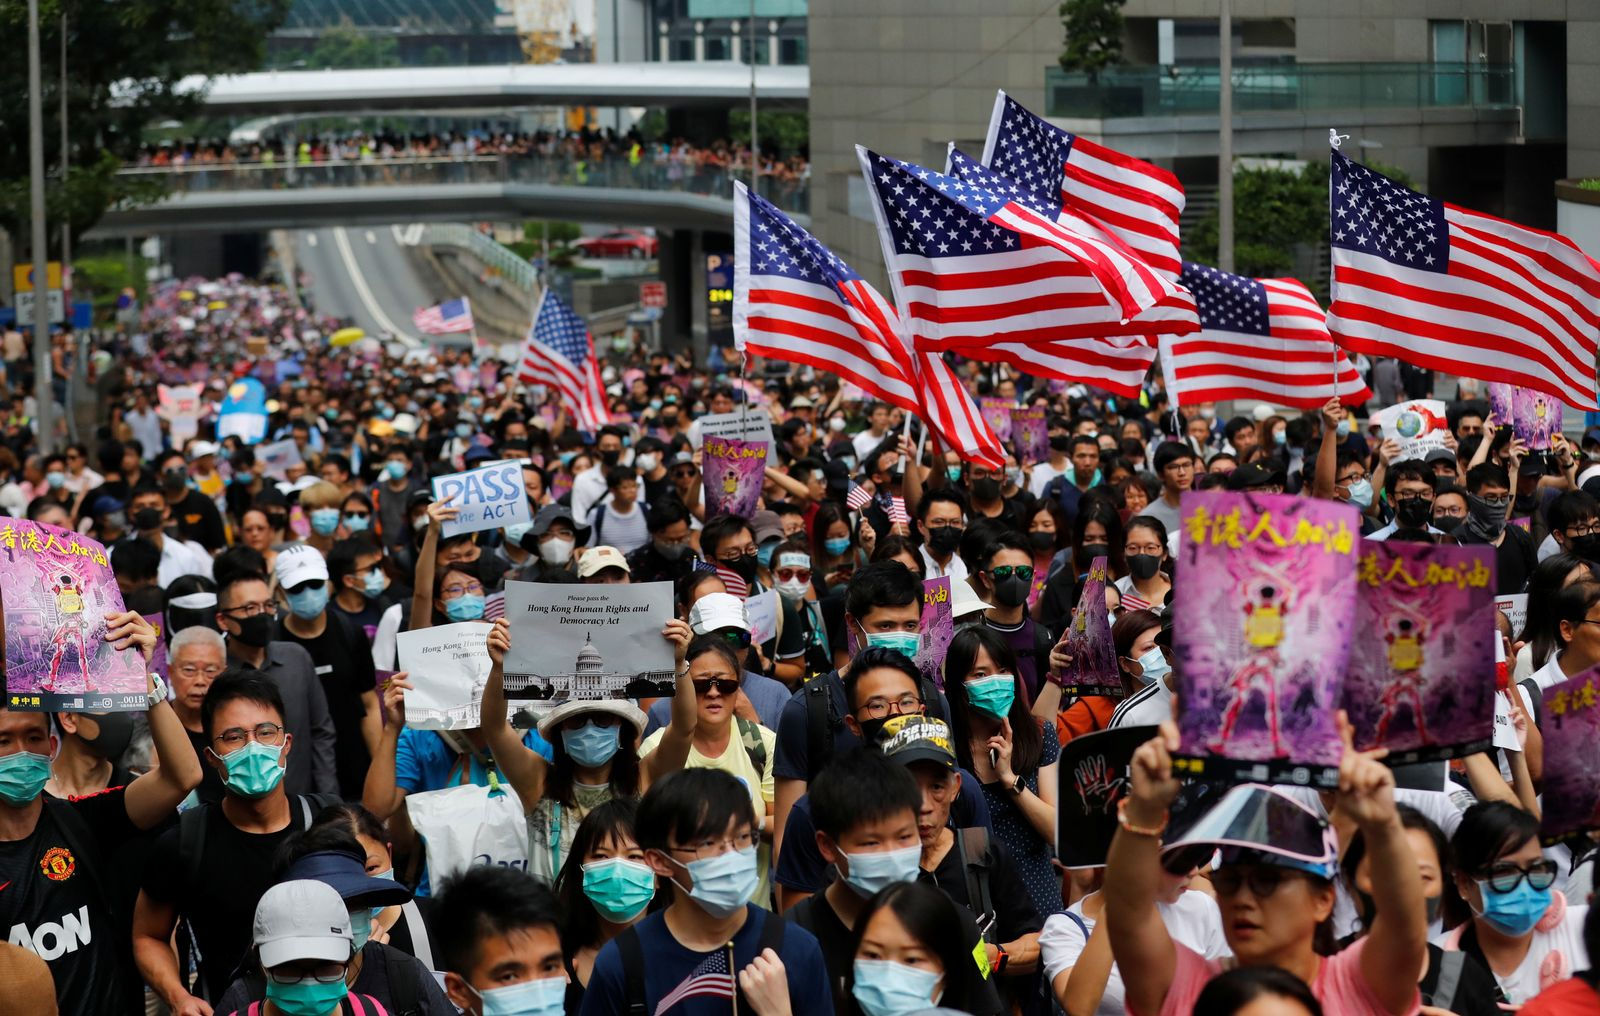 Hongkong/ Protest/ Demonstration/ USA Flaggen